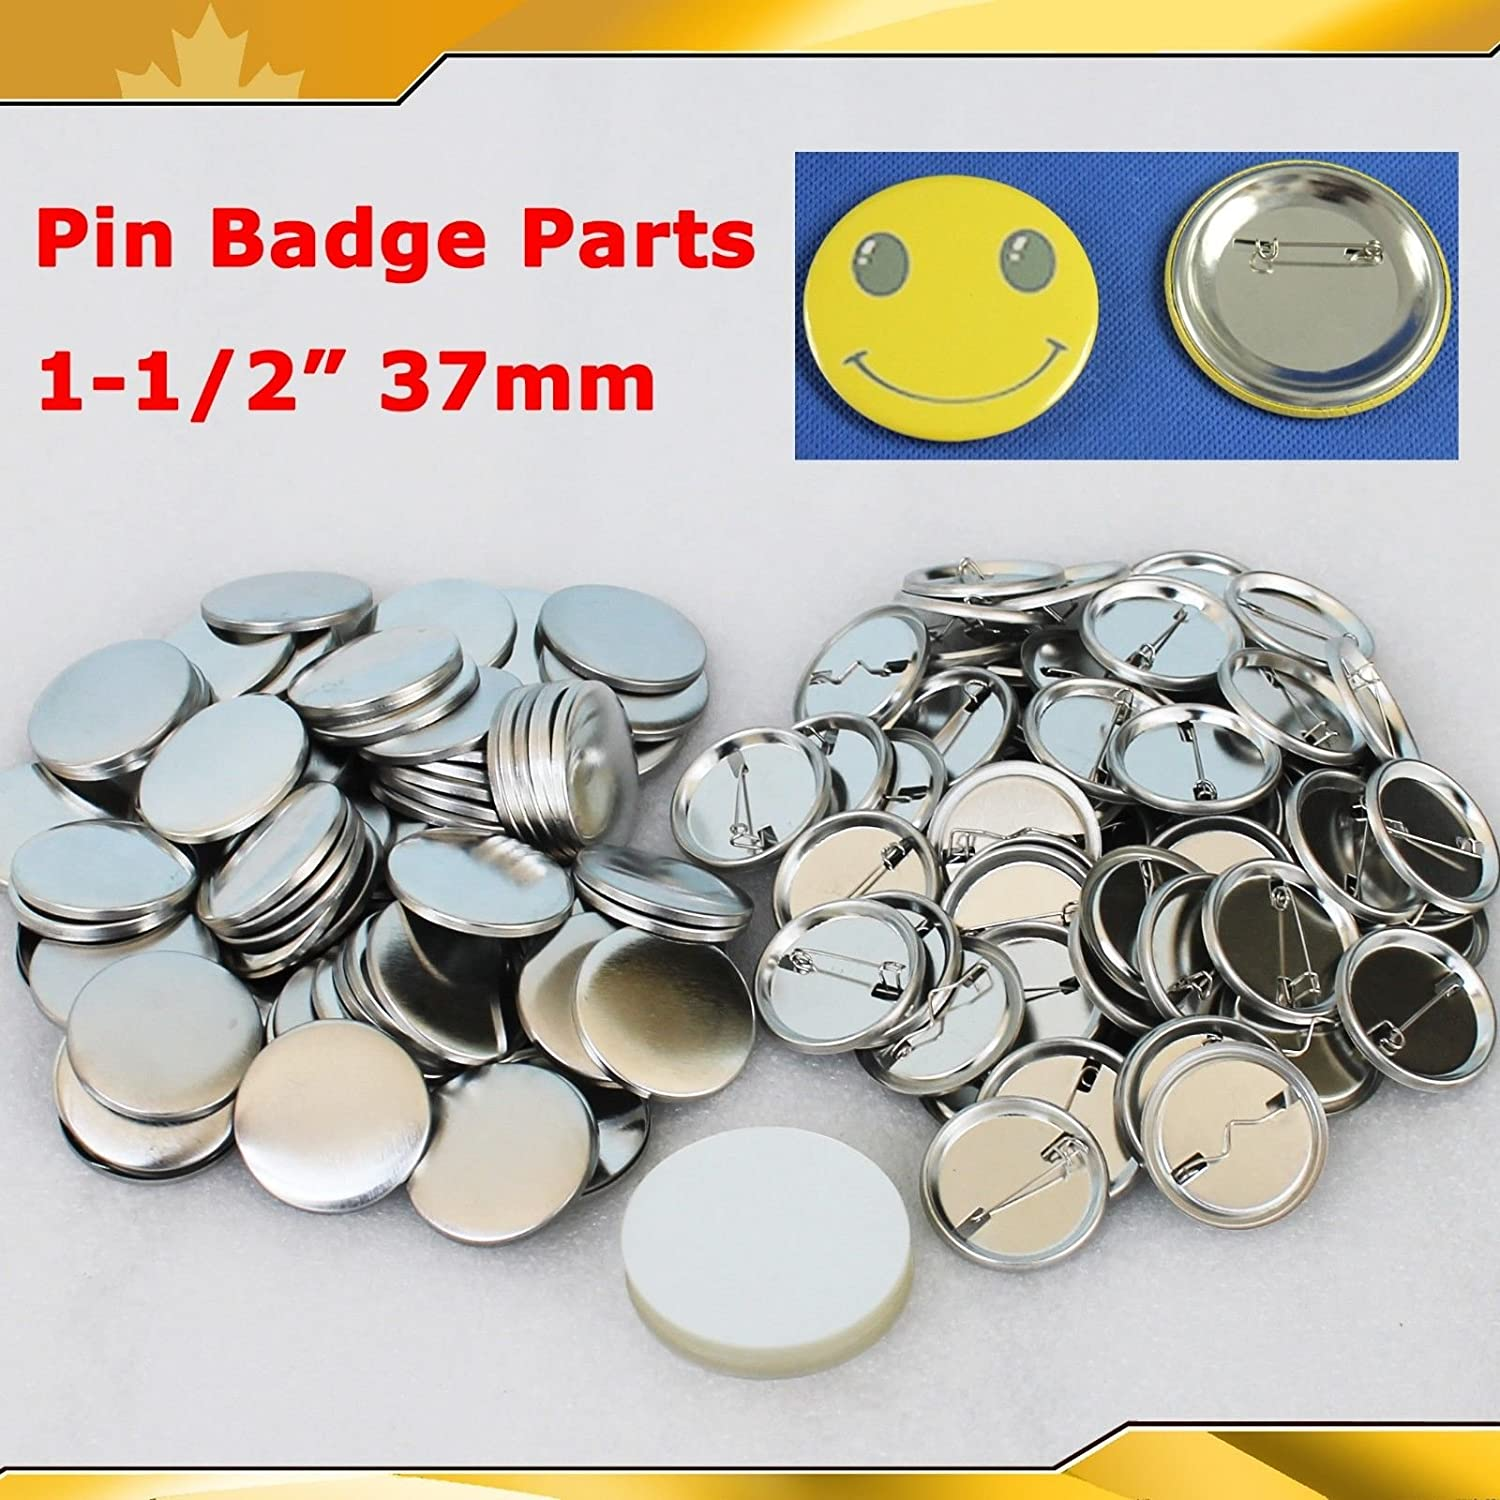 Asc365 1-1/2' 37mm 100sets Pin Badge Button Parts Supplies for Pro Maker Machine(item#015502) CN